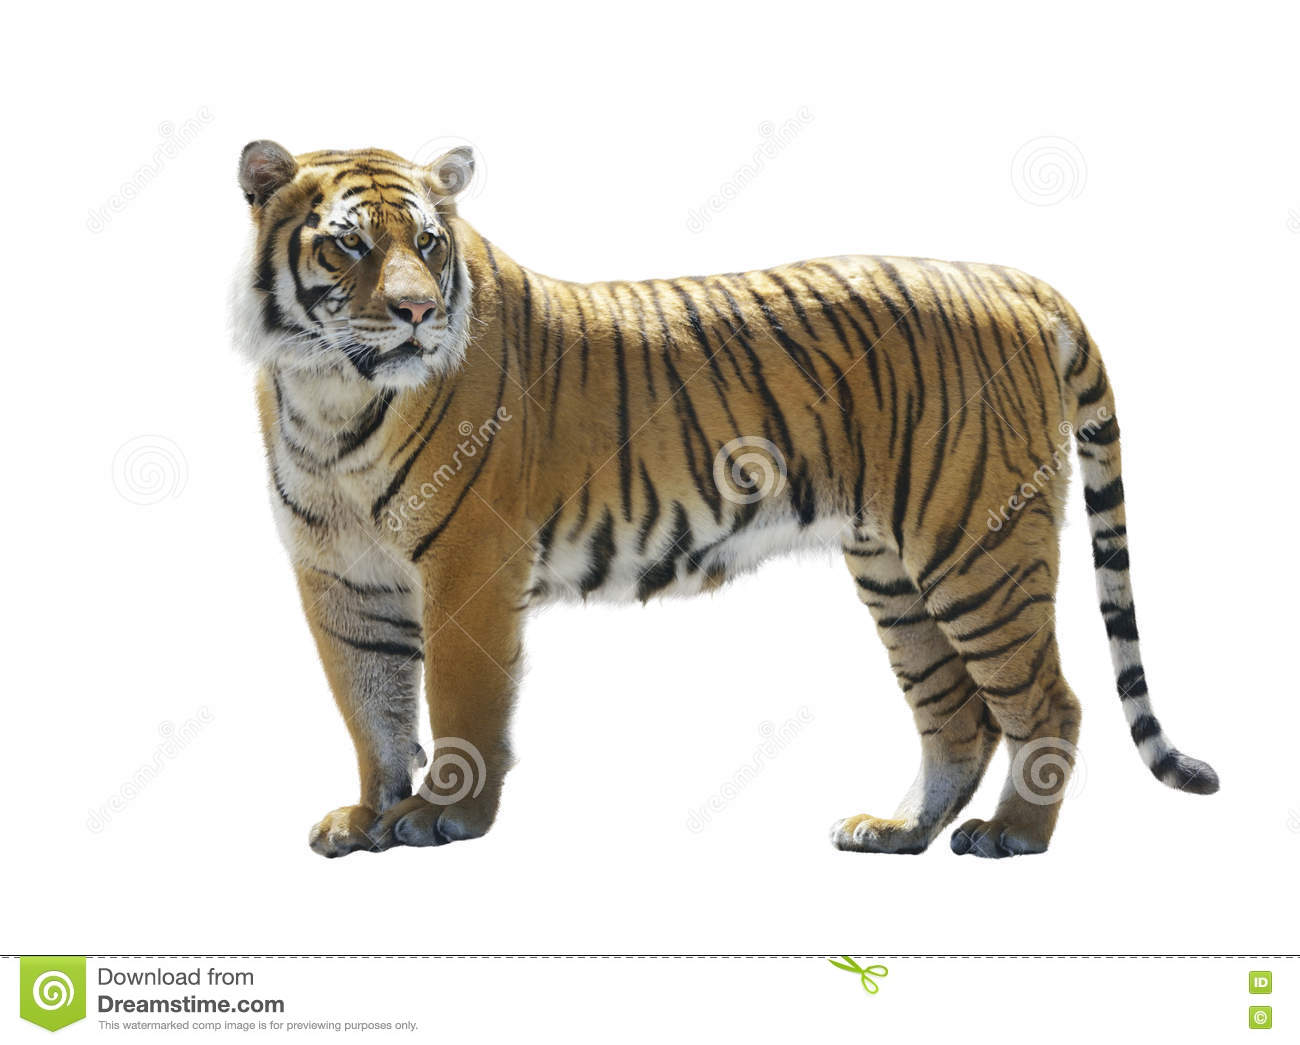 tiger on white background stock photo image of portrait 73110104